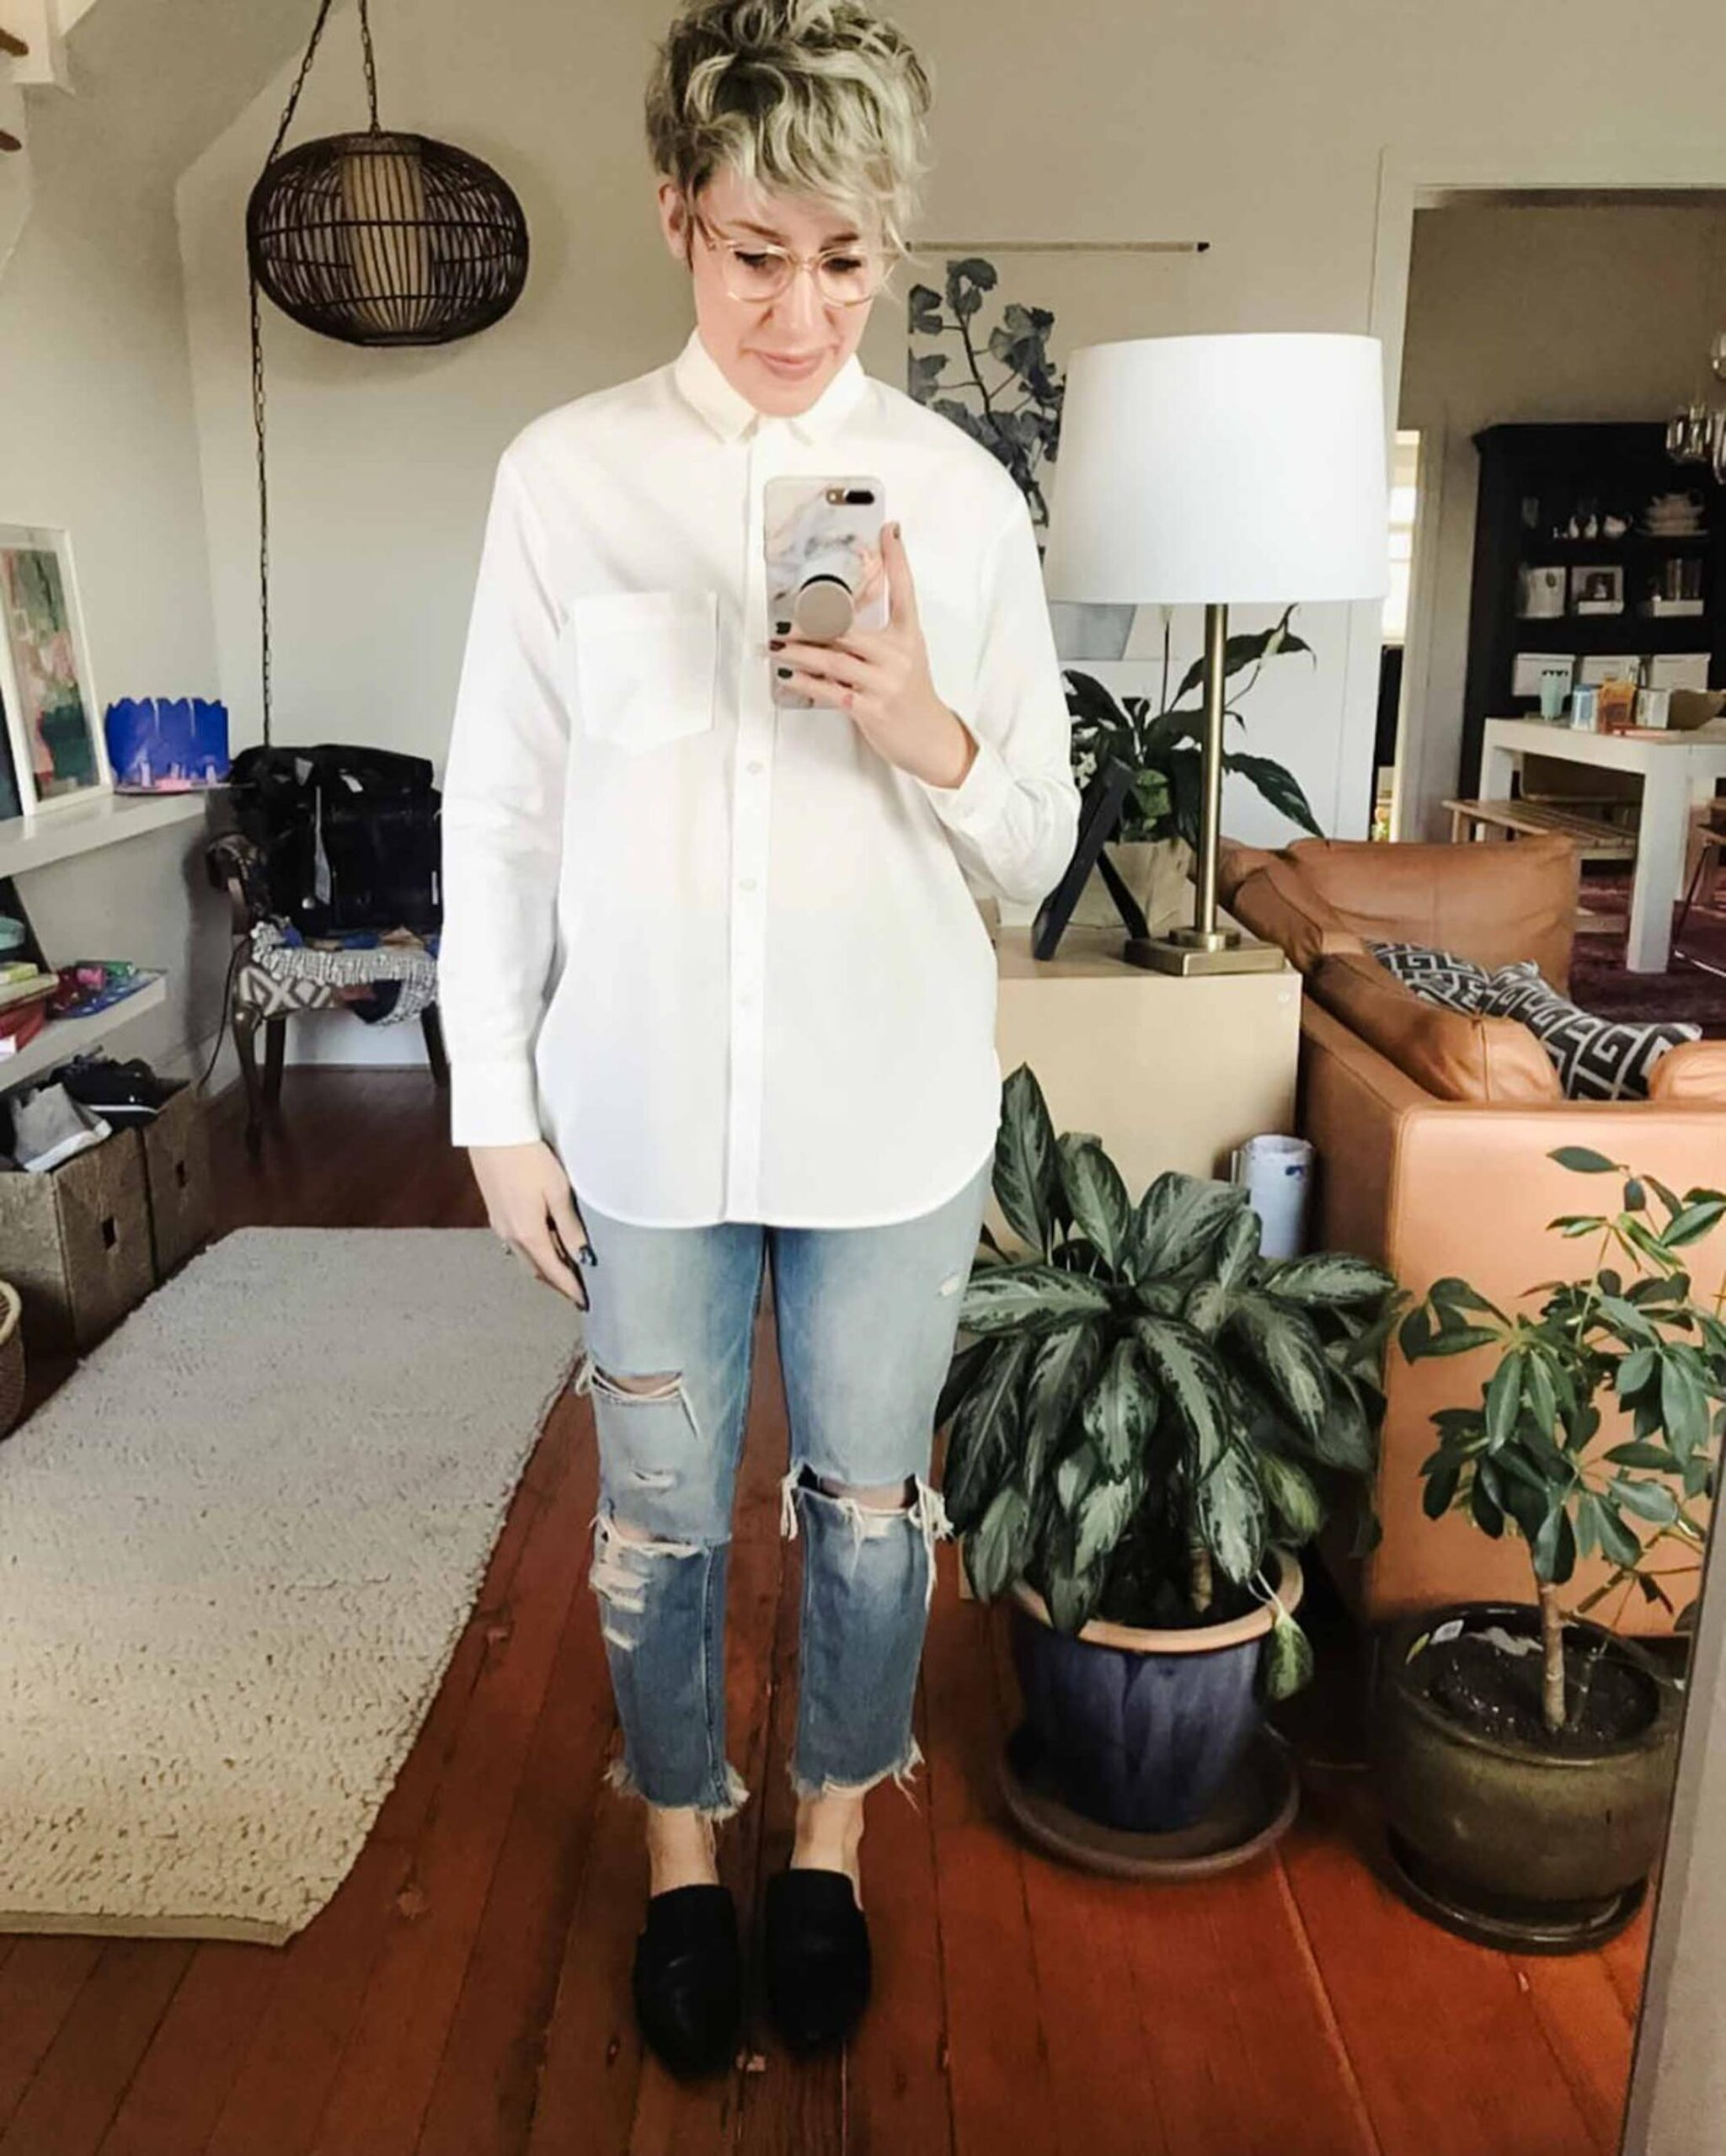 An outfit a day keeps the winter doldrums away. White button downs, monochromatic loungewear, house shoes & hoodies...#TMEStyleChallenge